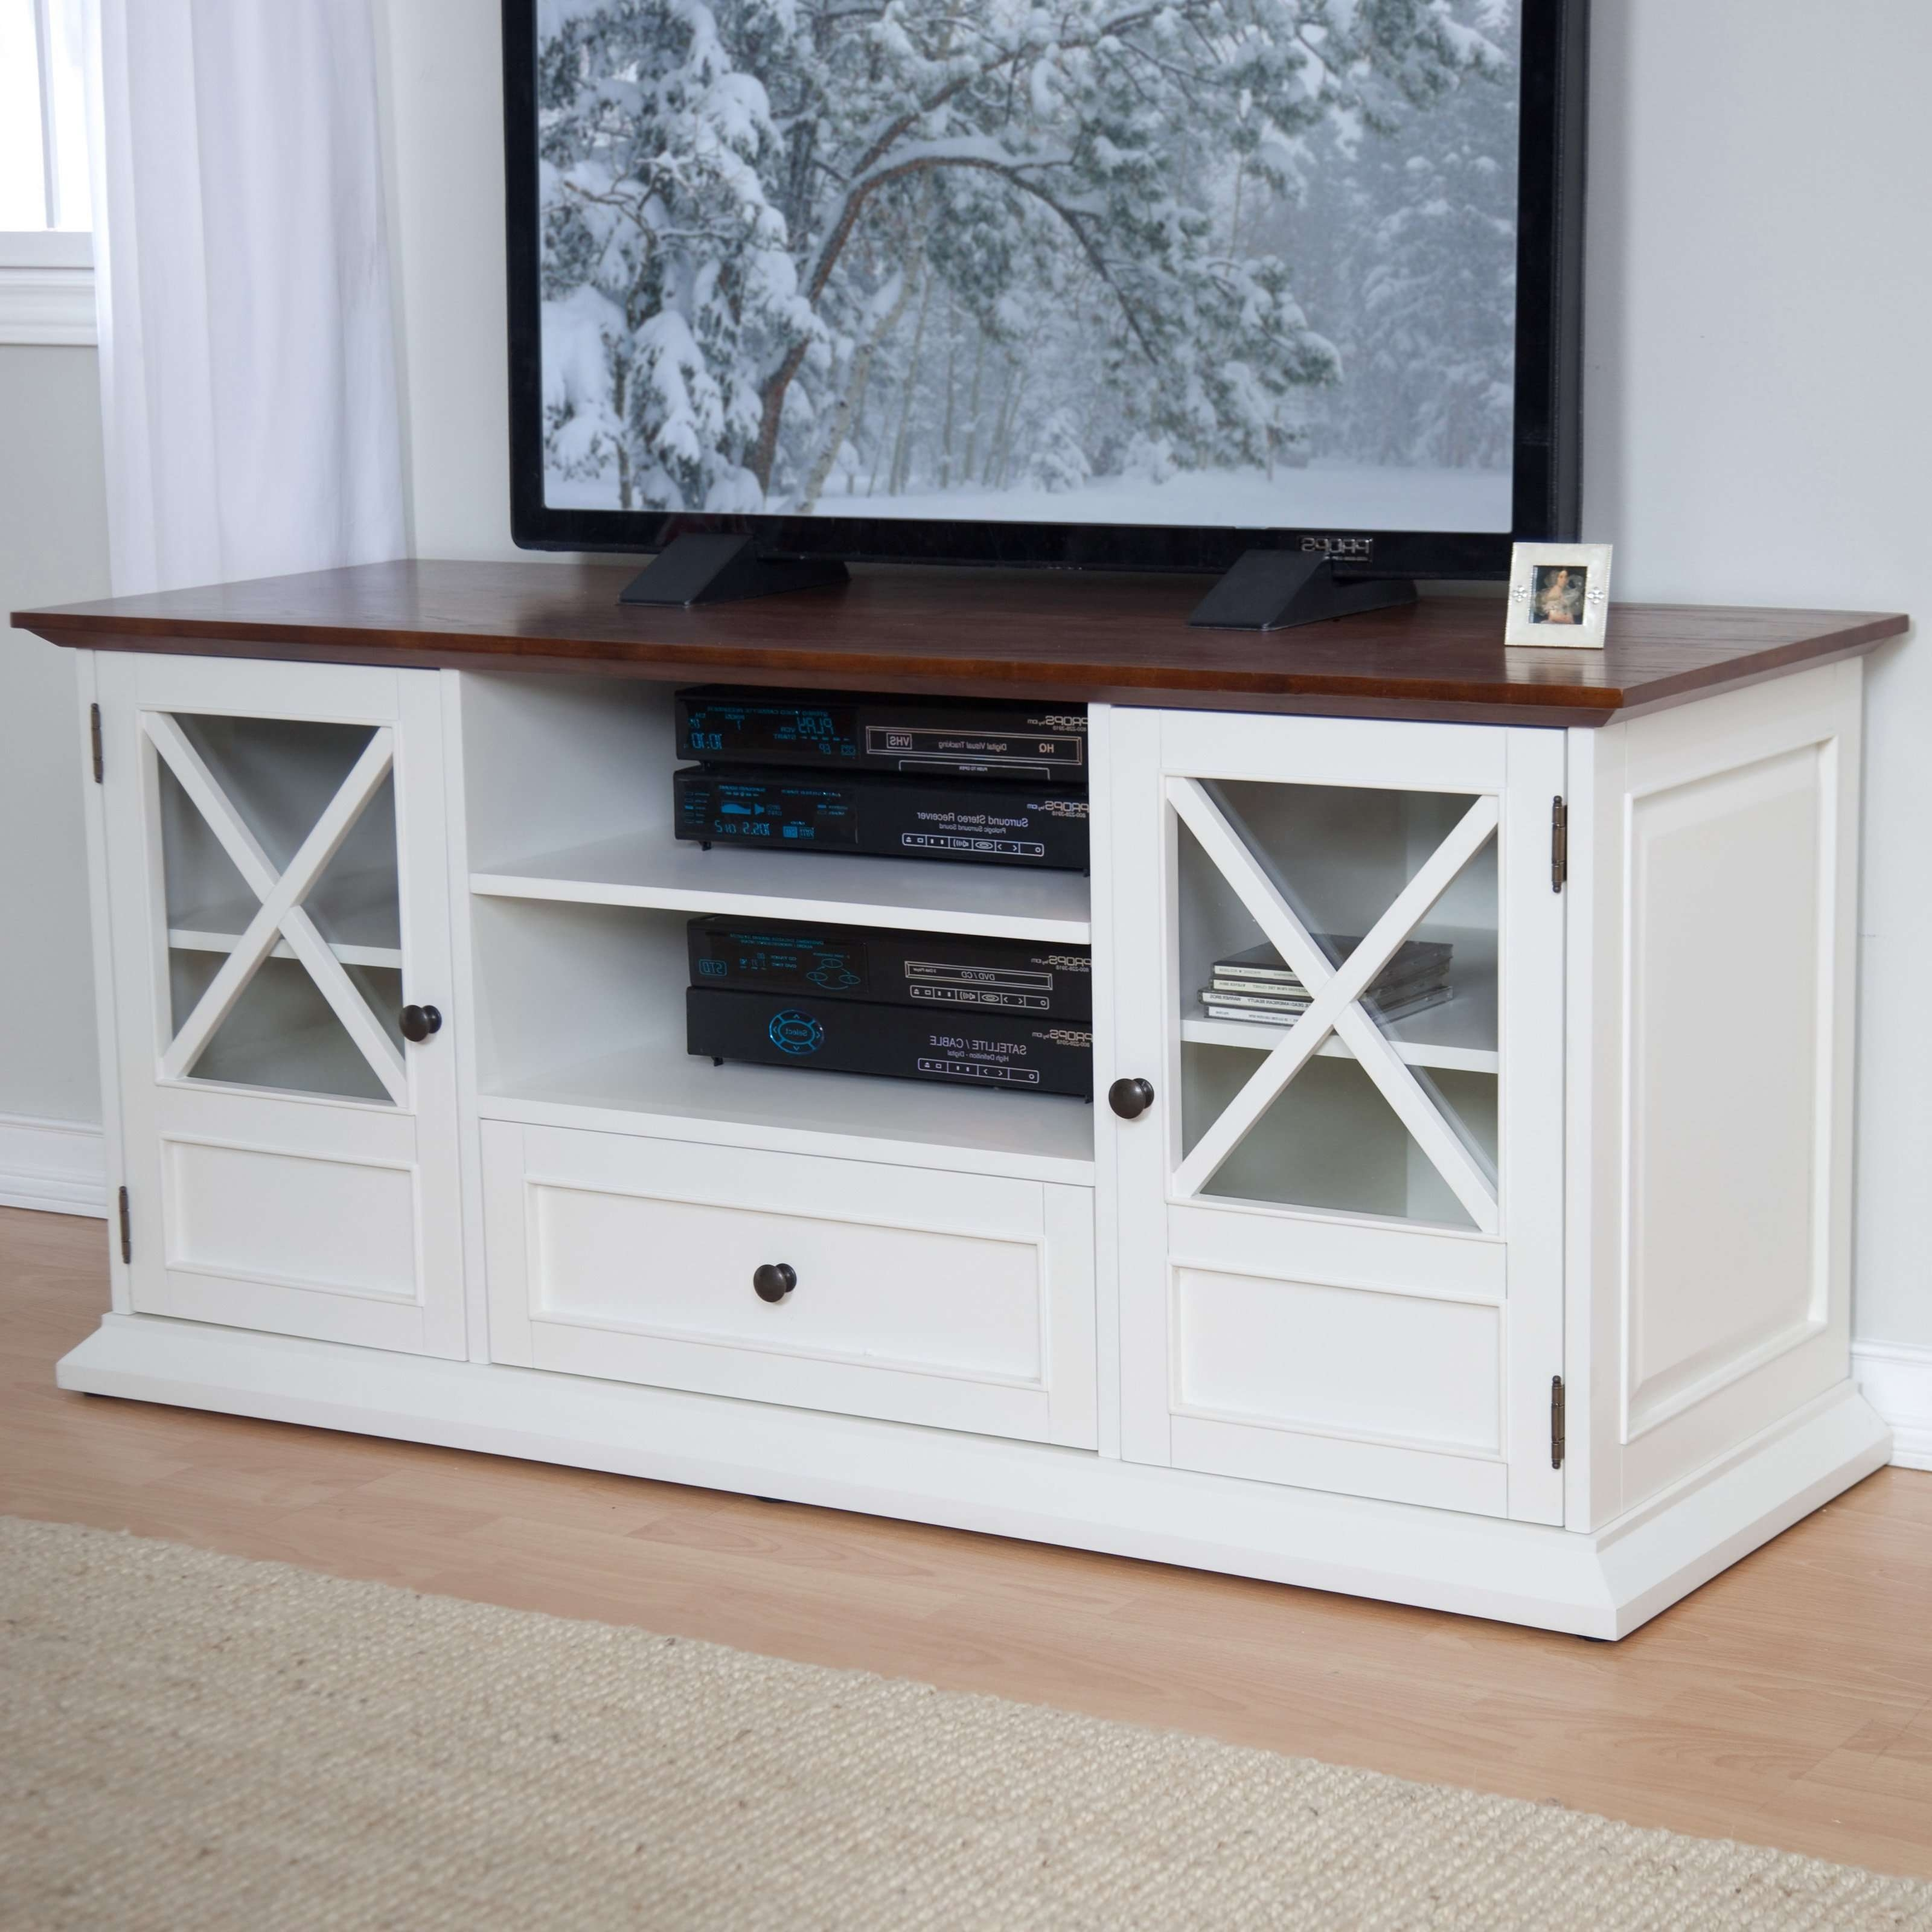 Belham Living Hampton Tv Stand – White/oak | Hayneedle With White Wood Tv Stands (View 1 of 15)